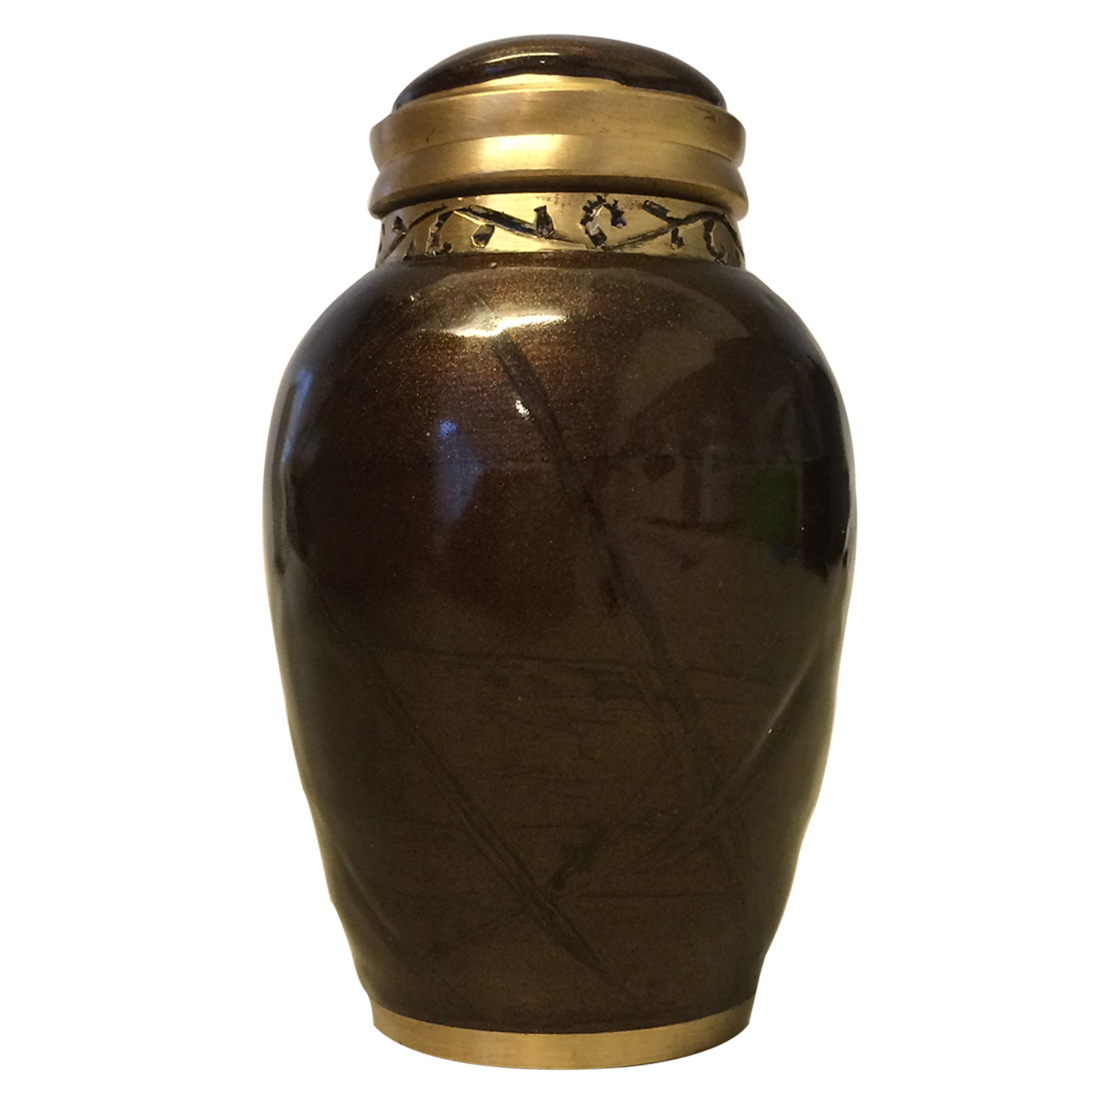 Blessing Bronze Small Keepsake Urn Cremation Urns For Ashes